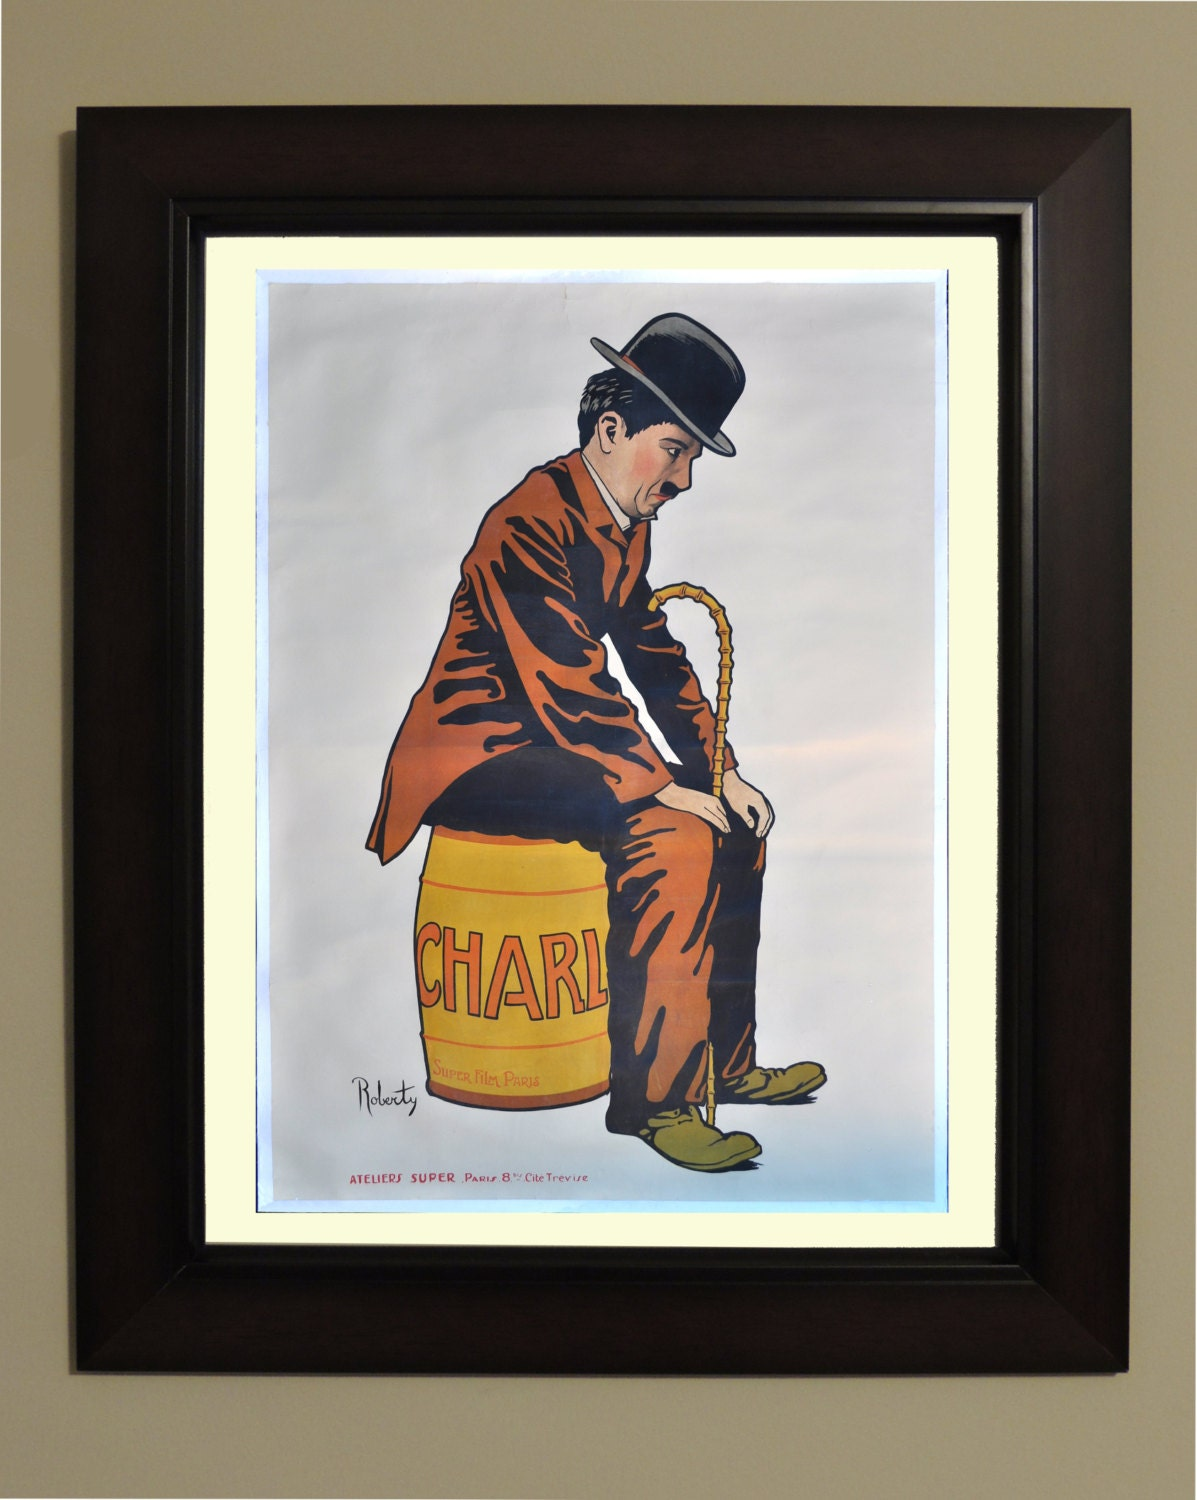 Charlie Chaplin Movie Poster 3 sizes available one low